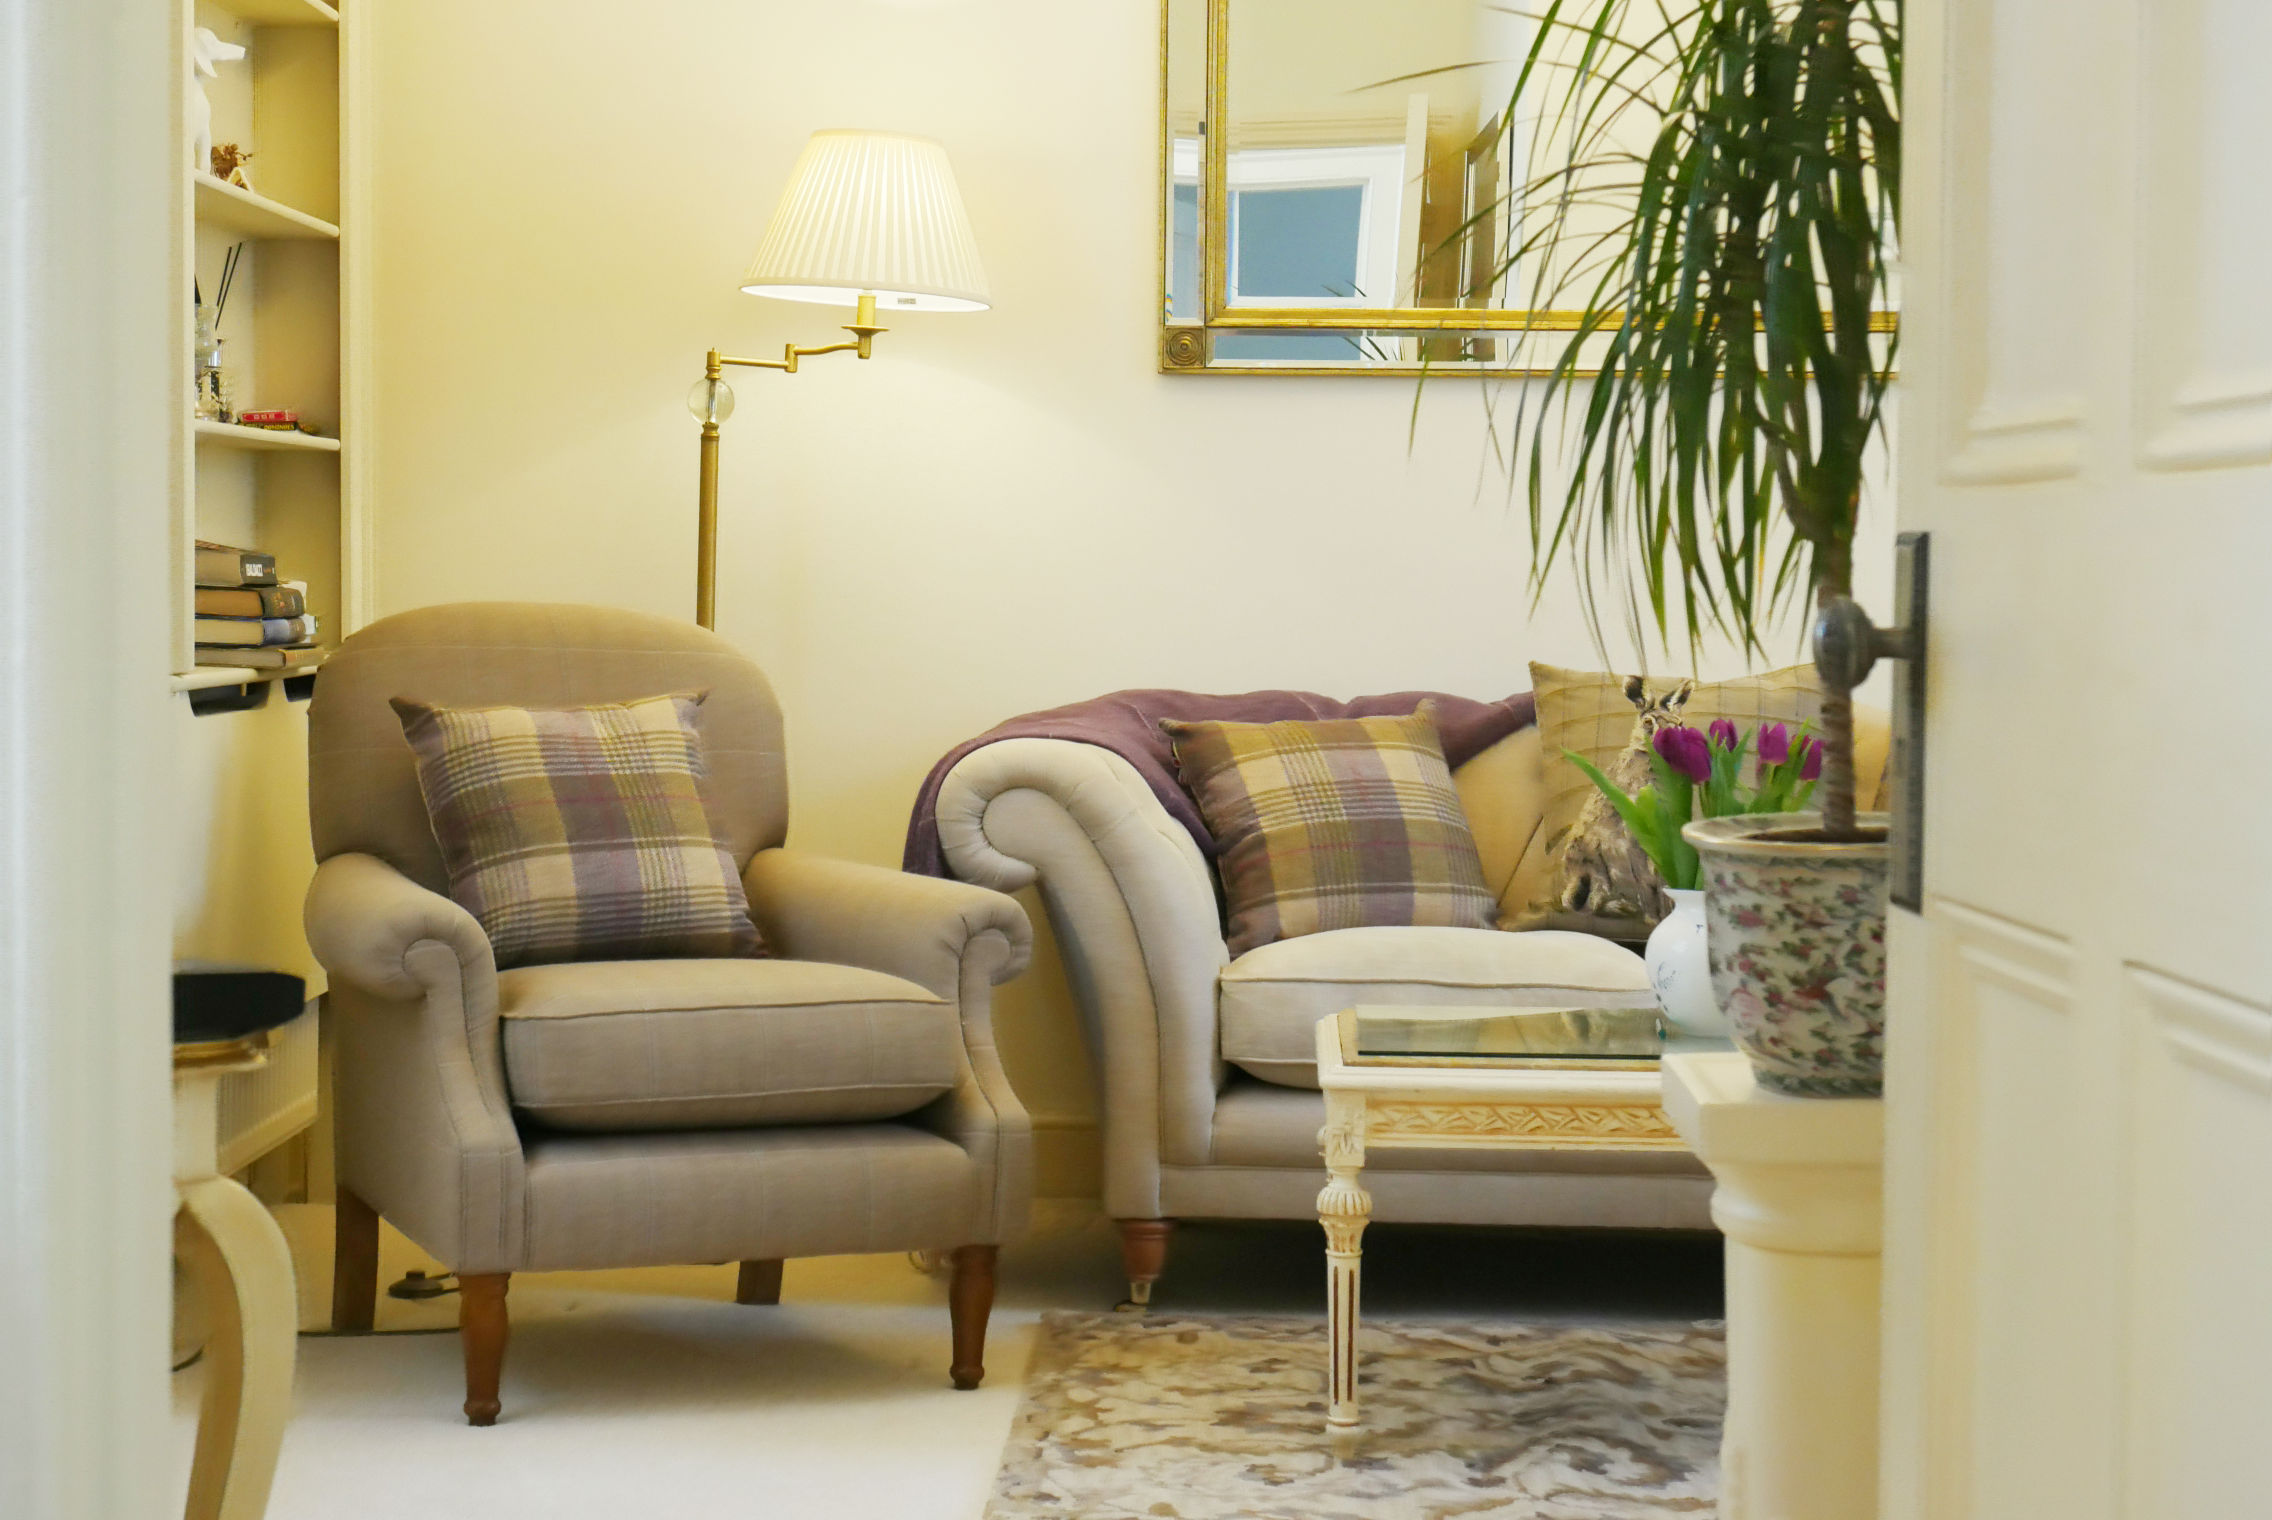 The Lounge at The Hesketh Crescent Luxury Holiday Apartment in Torquay